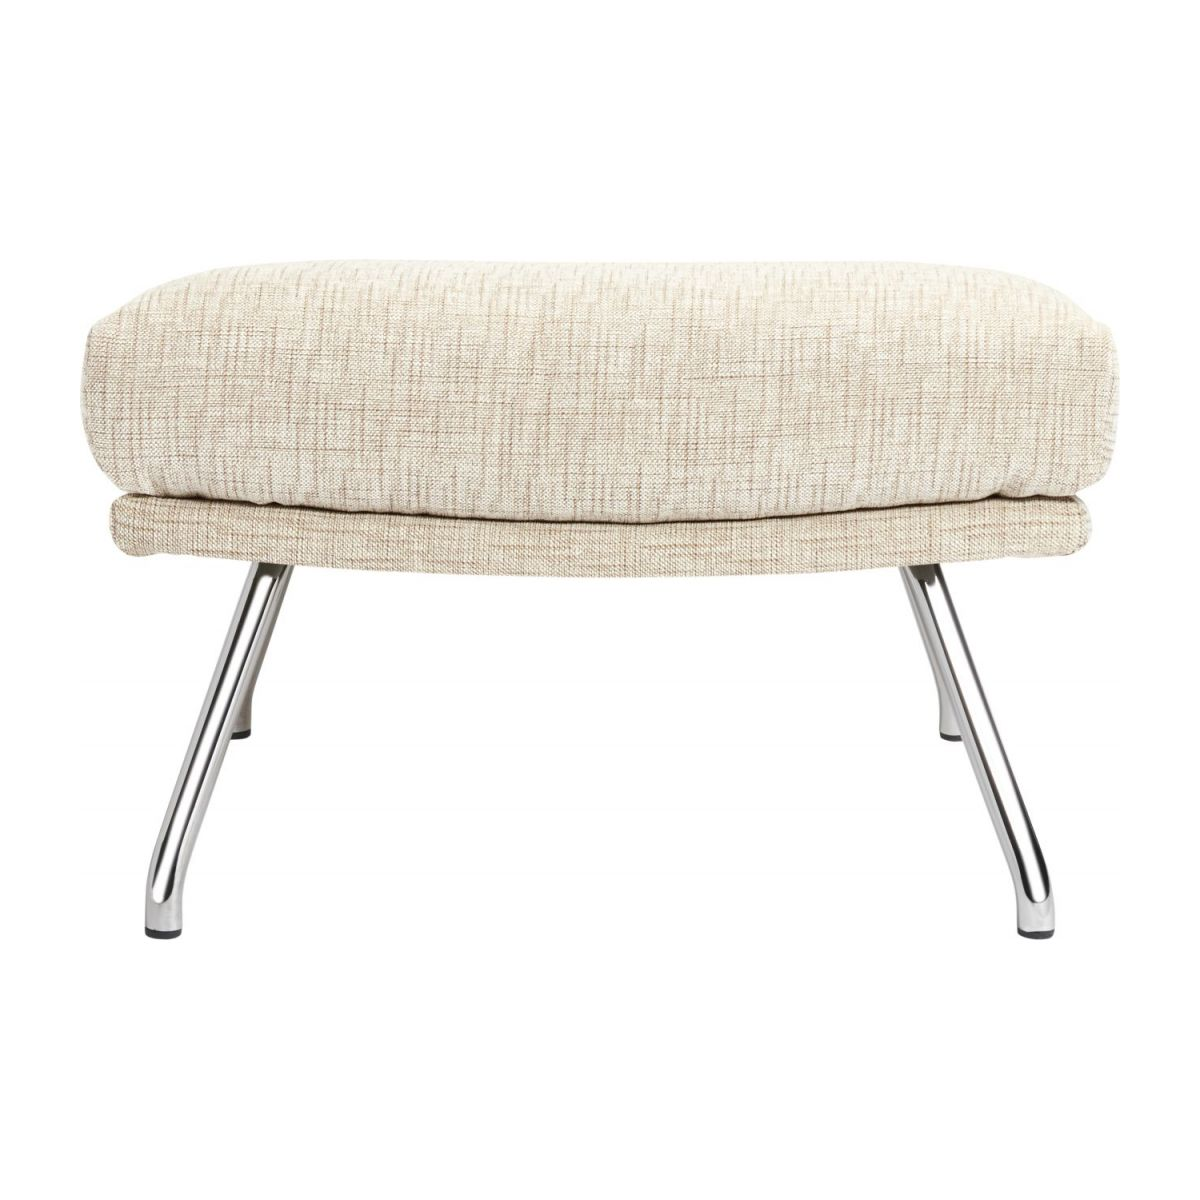 Footstool in Ancio fabric, nature with chromed metal legs n°2